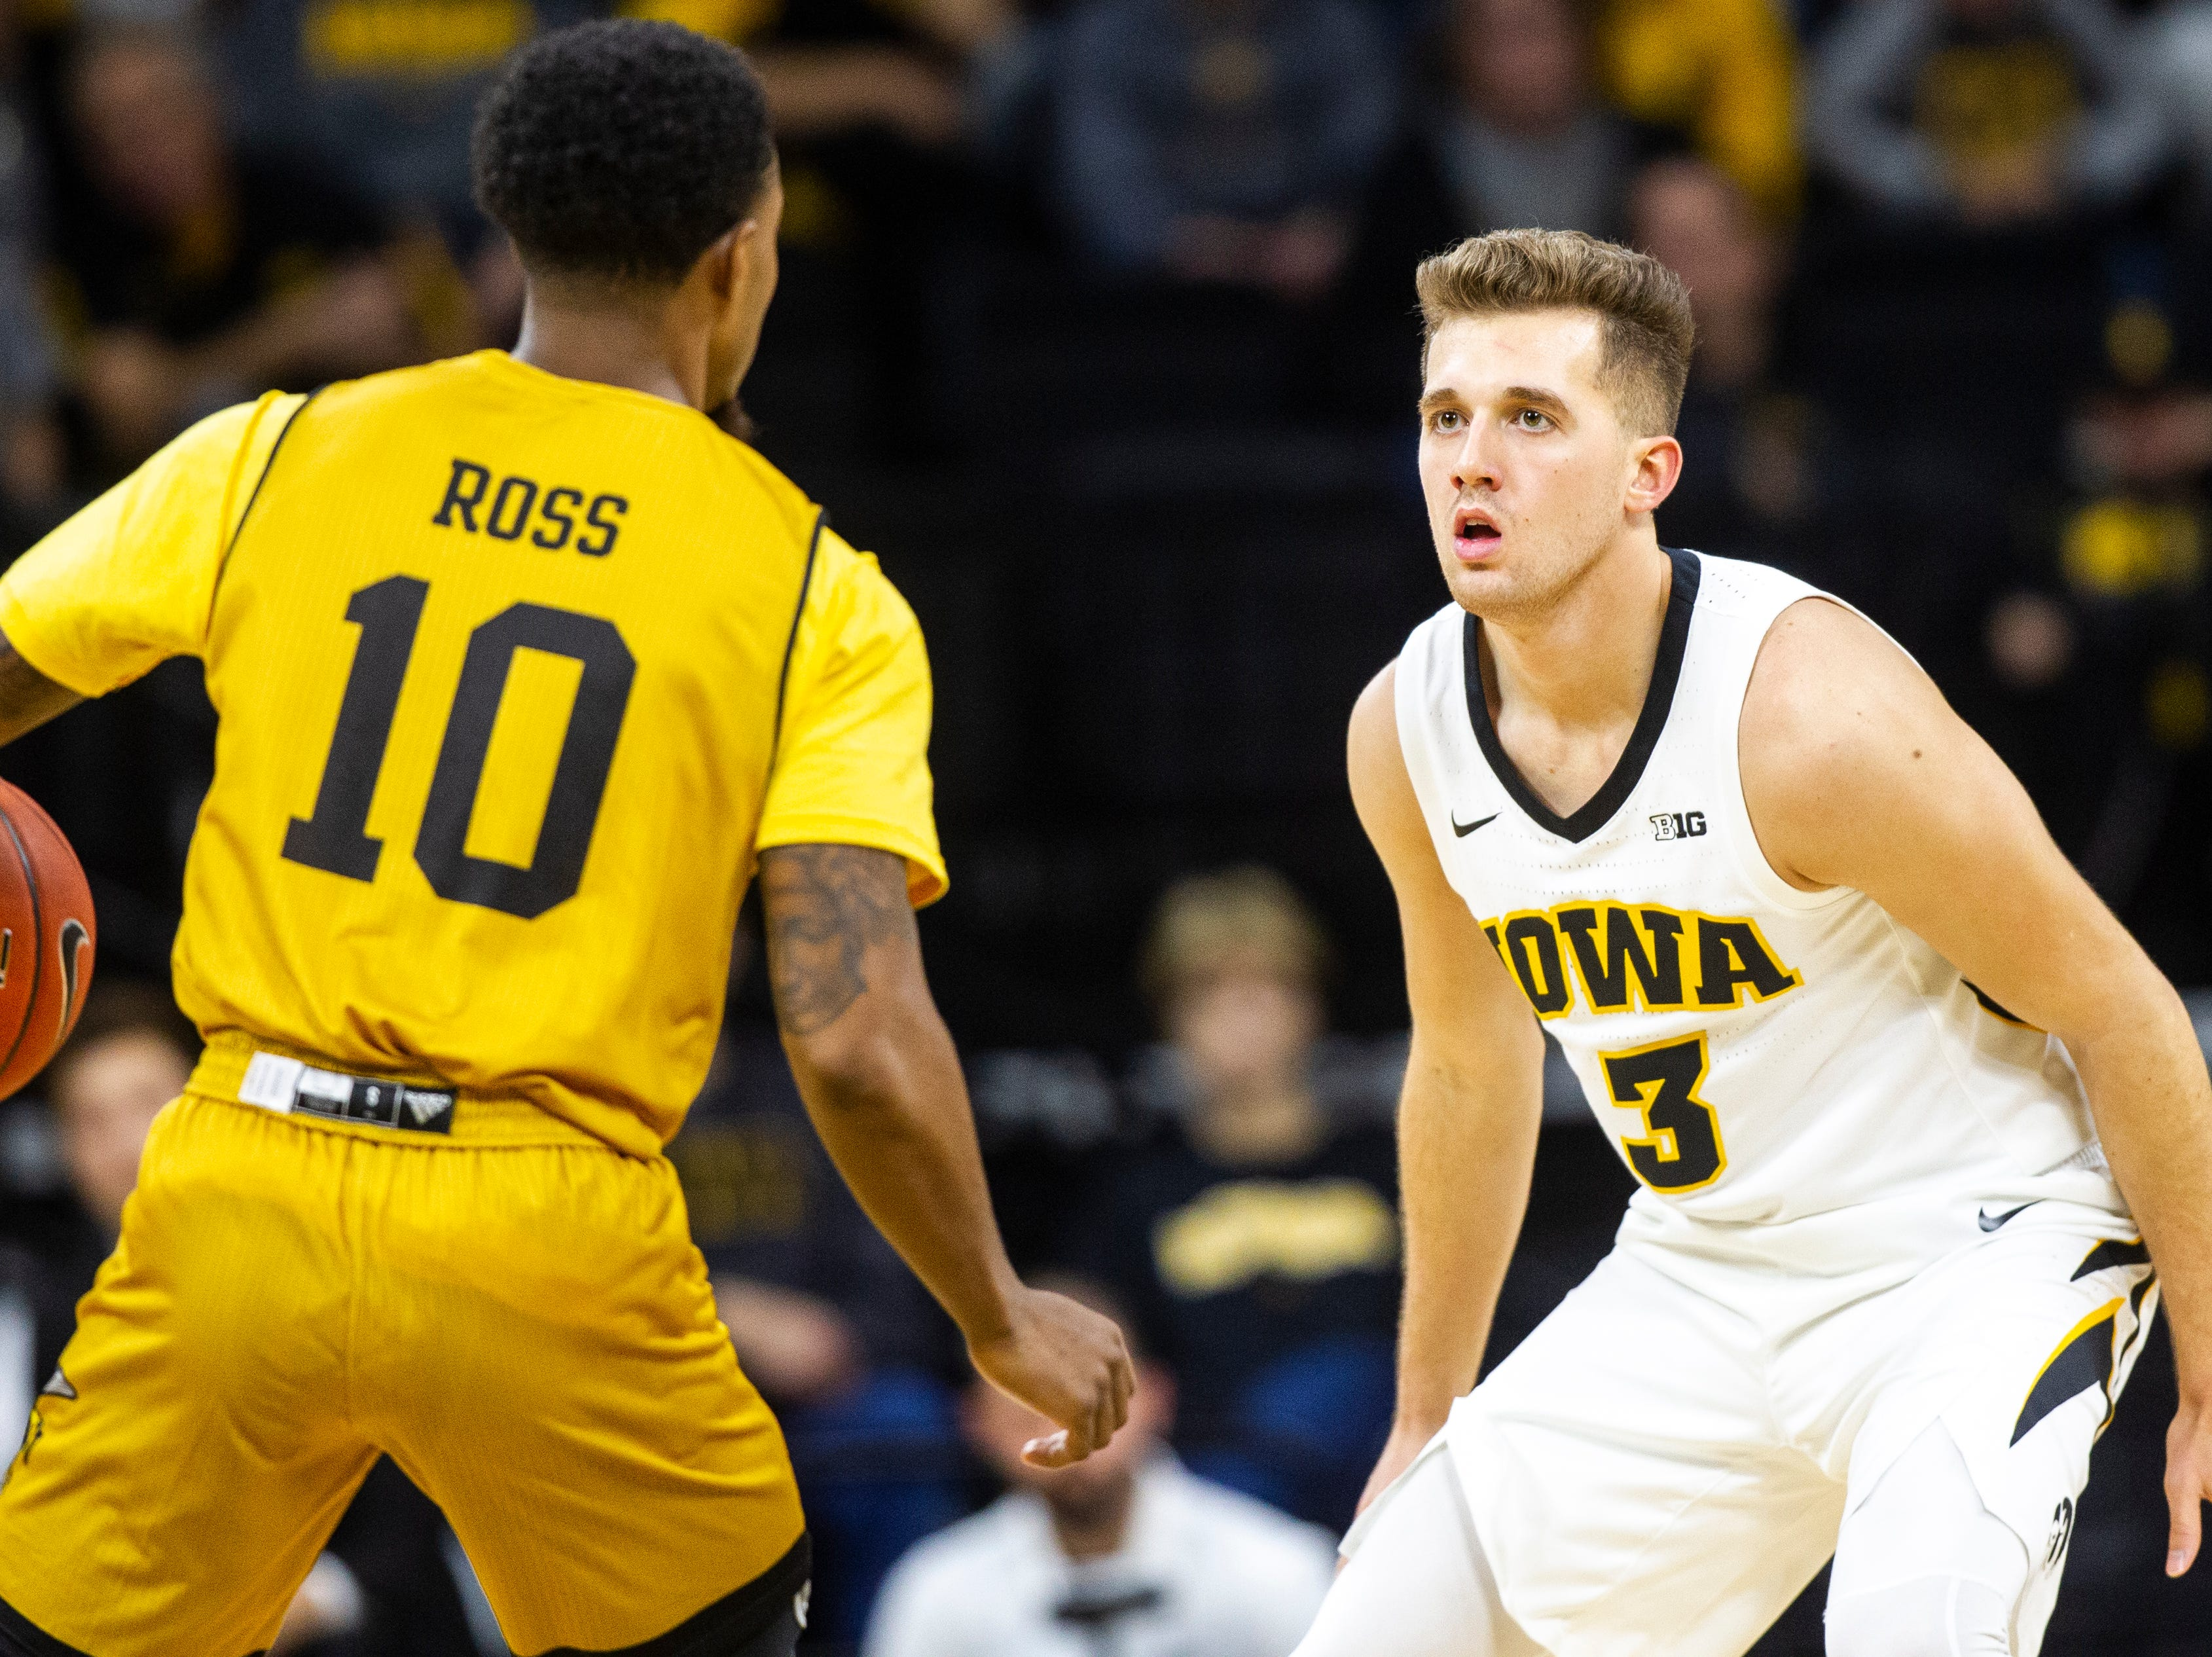 Iowa guard Jordan Bohannon (3) defends Alabama State's Jacoby Ross (10) during an NCAA men's basketball game on Wednesday, Nov. 21, 2018, at Carver-Hawkeye Arena in Iowa City.